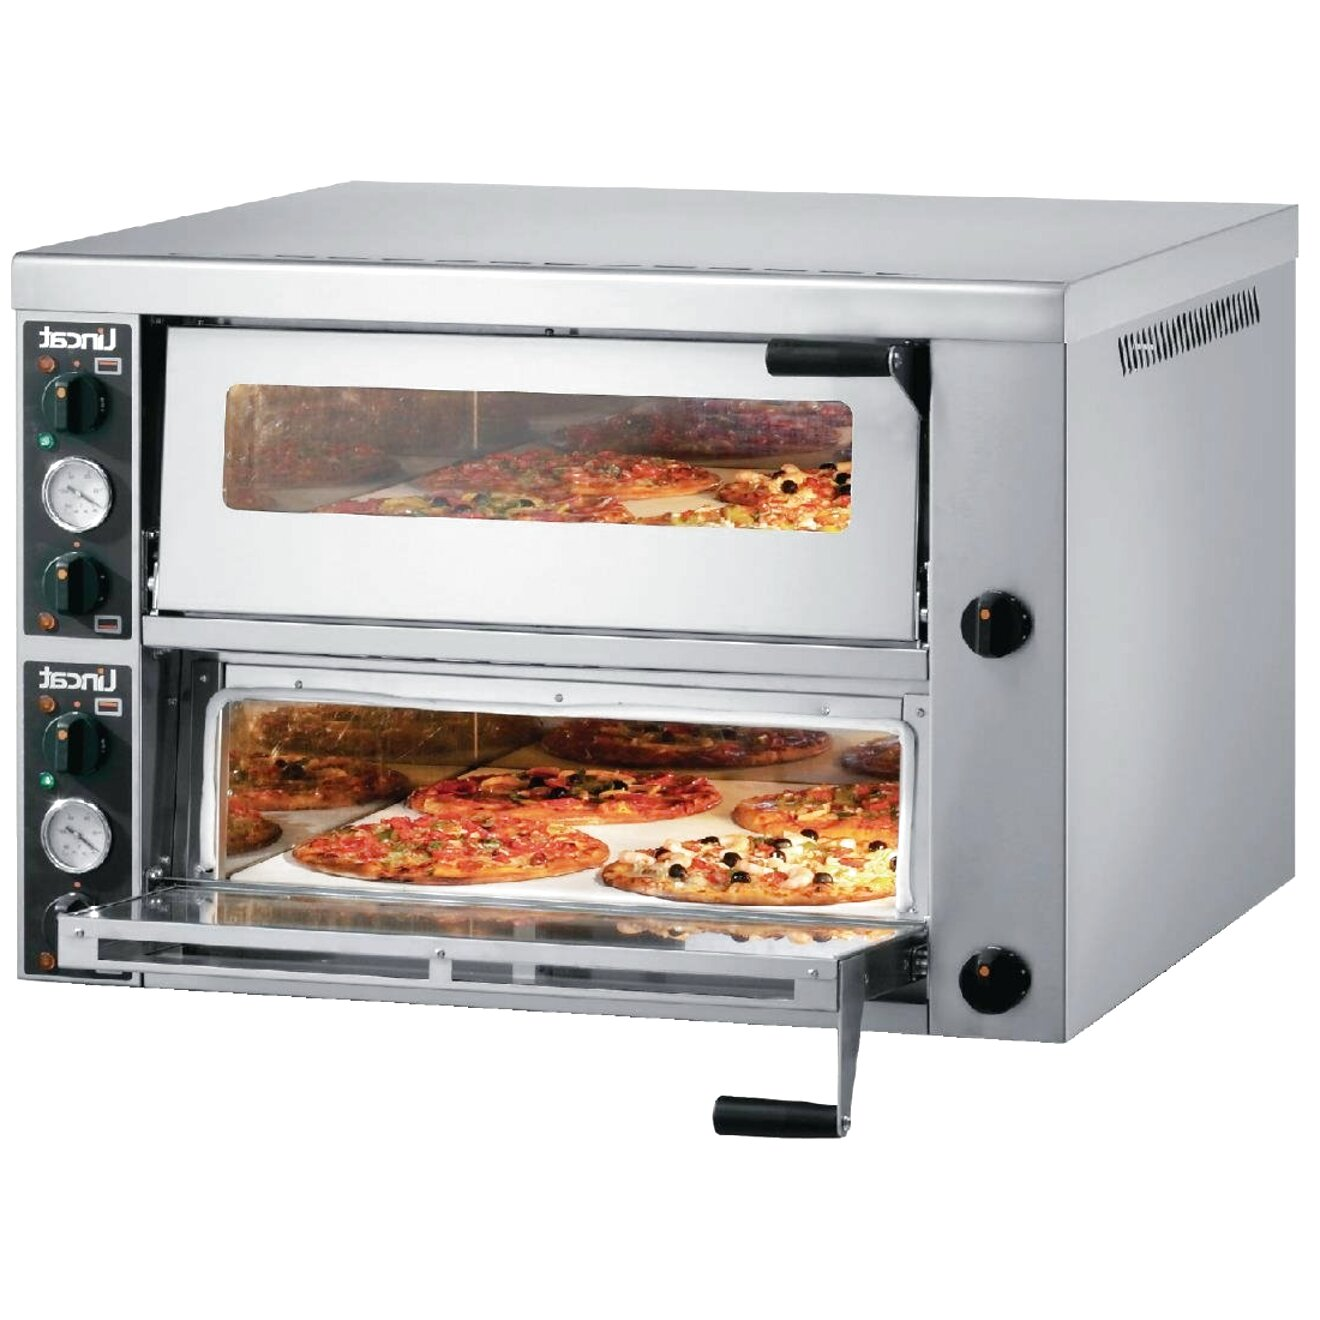 lincat pizza oven for sale